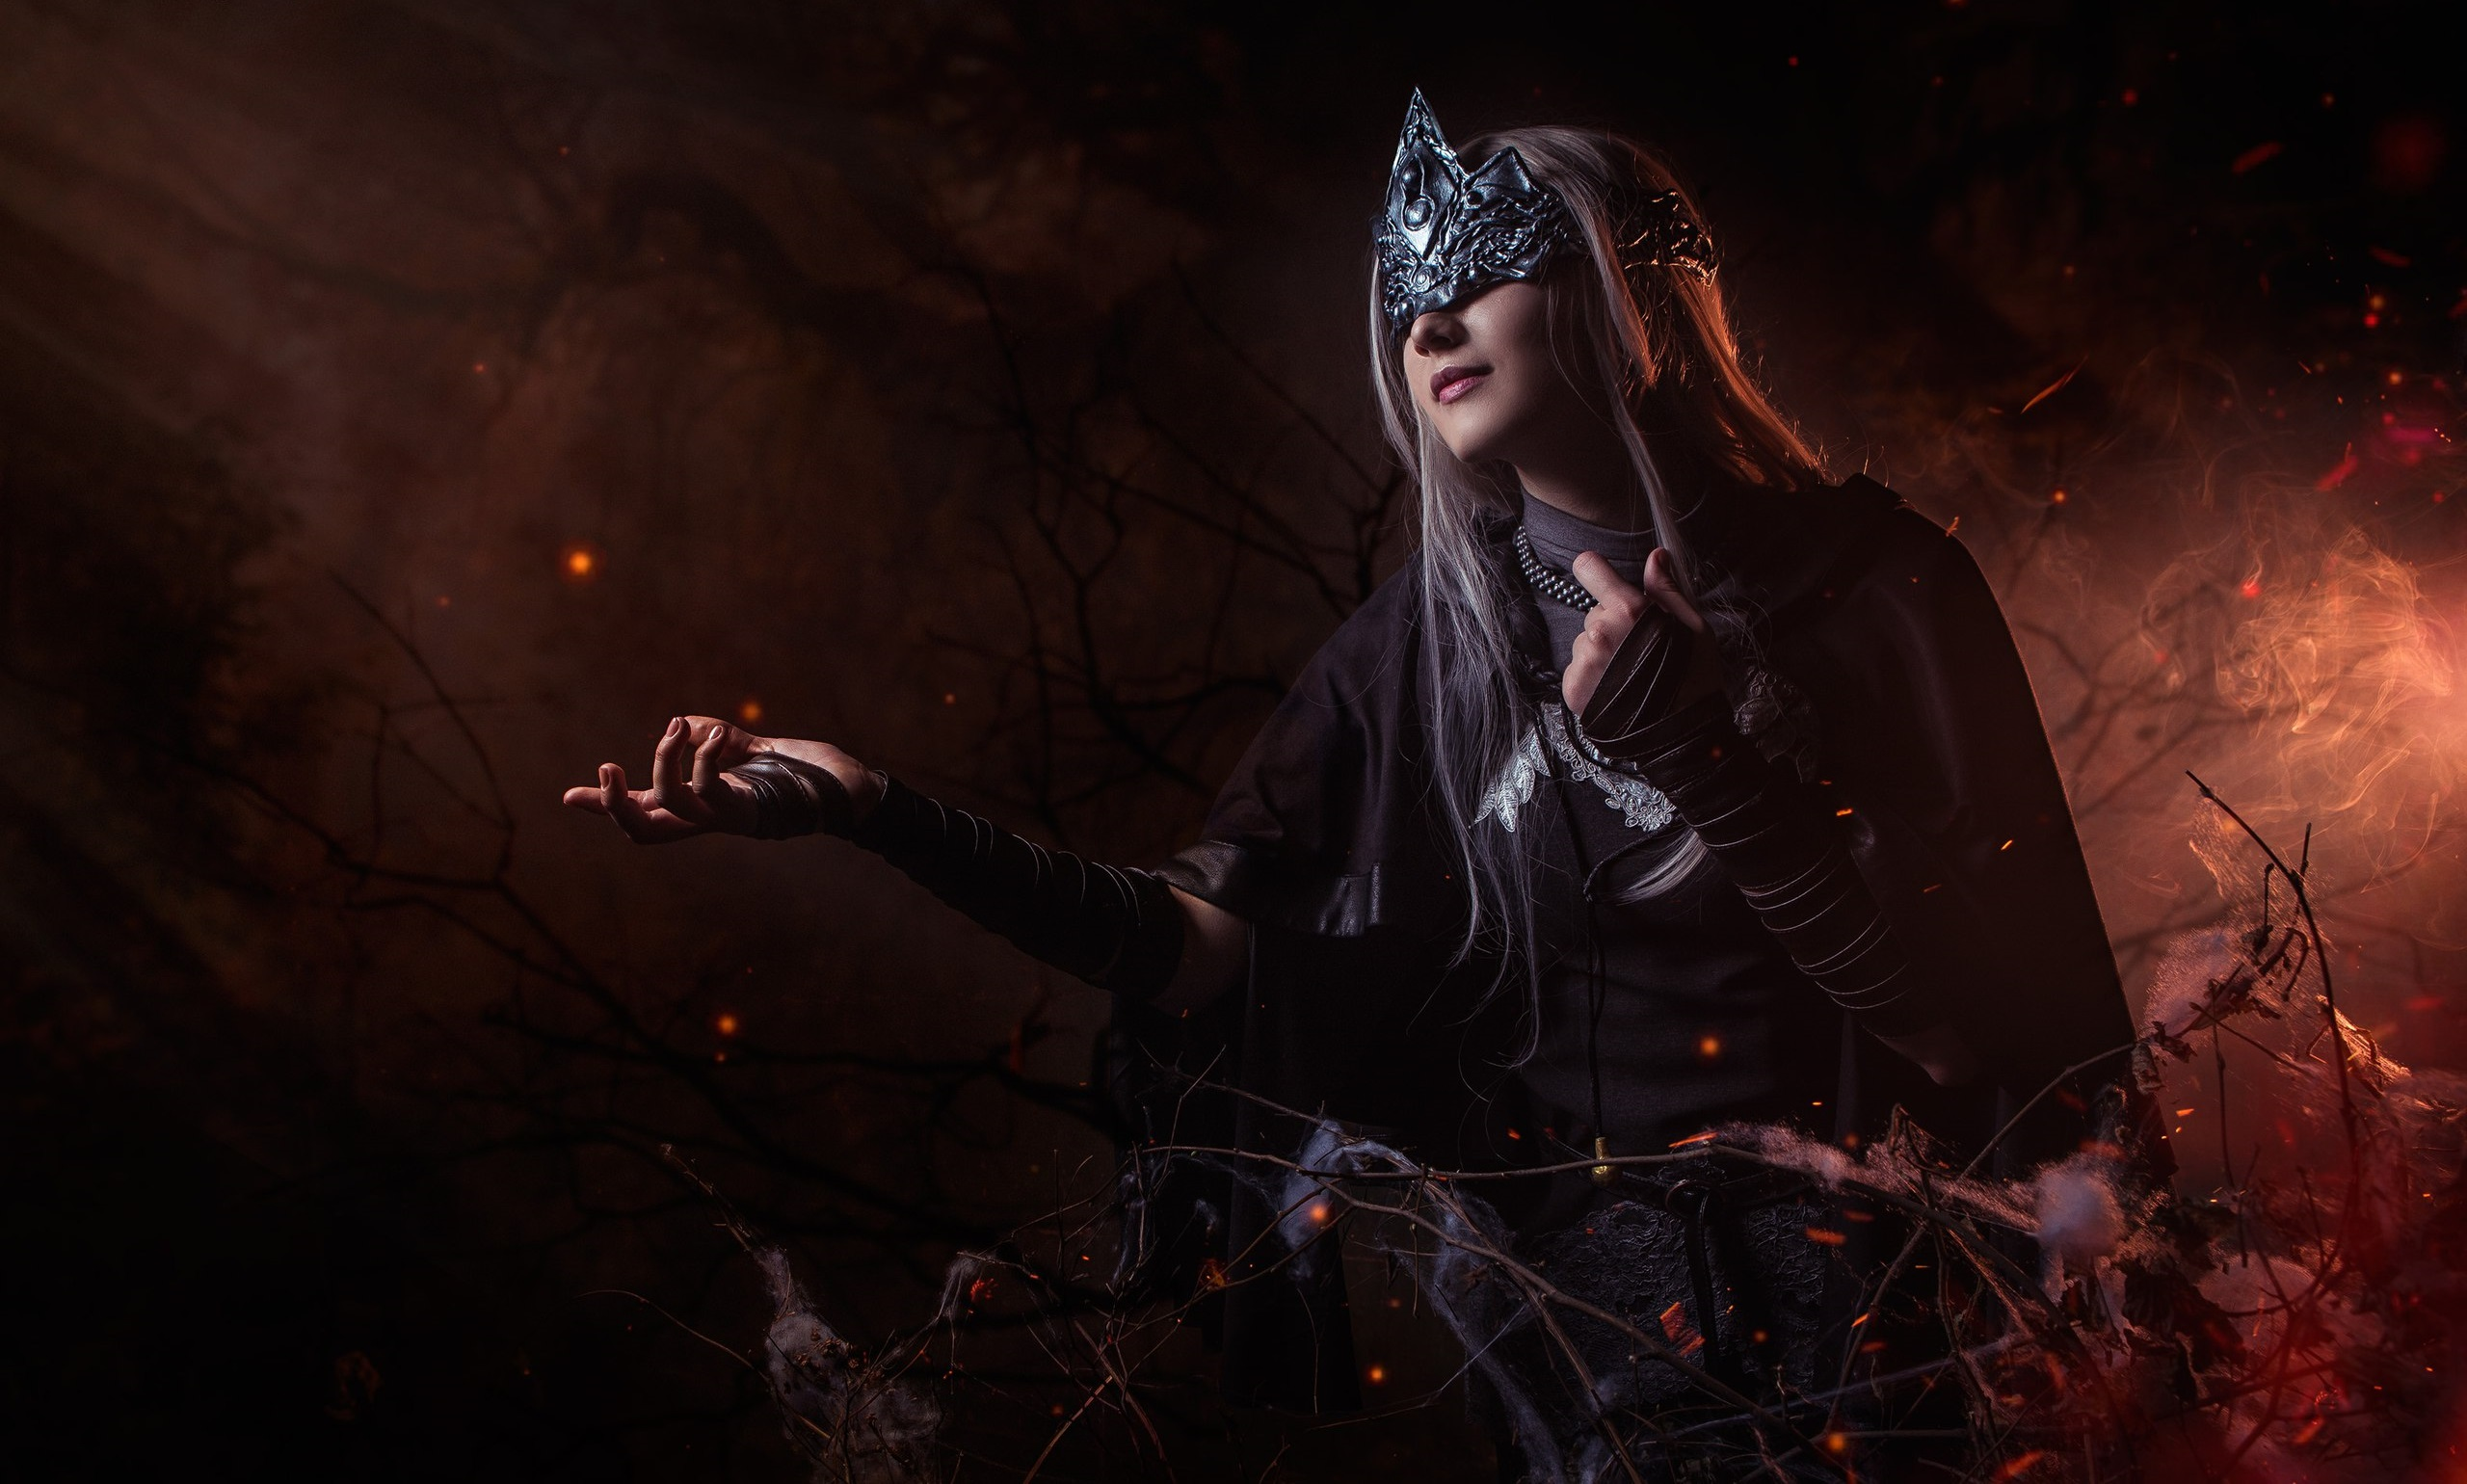 Cosplay Hd Wallpaper Background Image 2560x1540 Id 712572